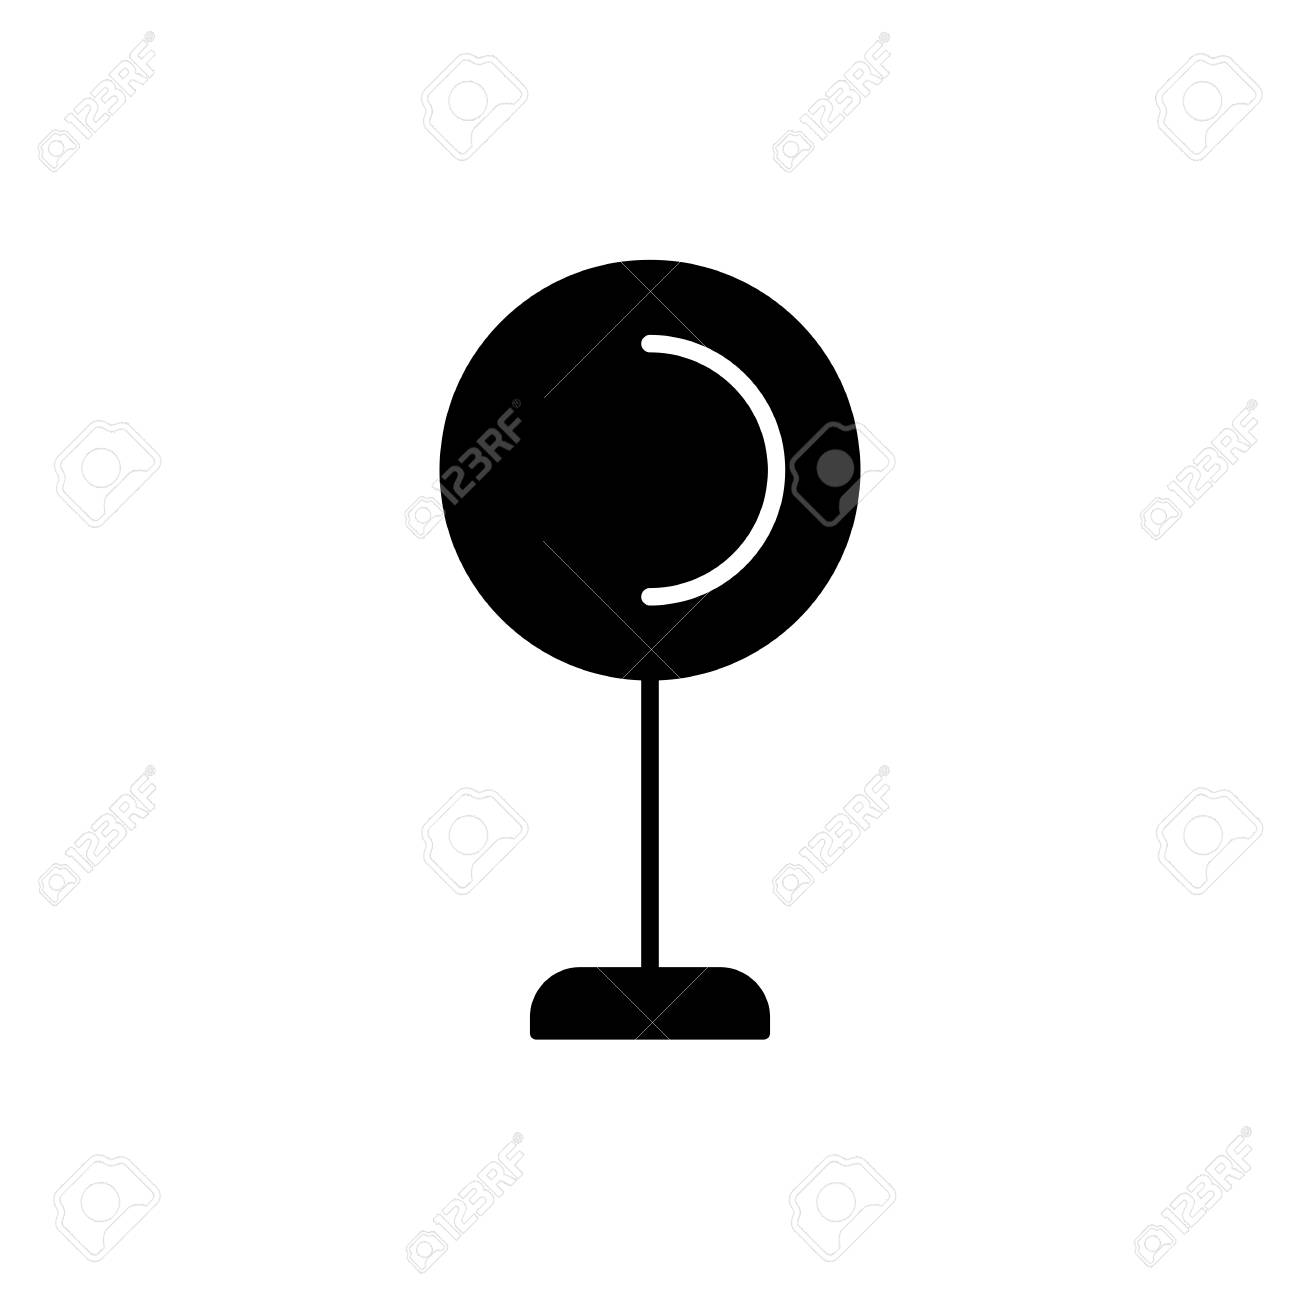 Black White Vector Illustration Of Globe Table Lamp Flat Icon